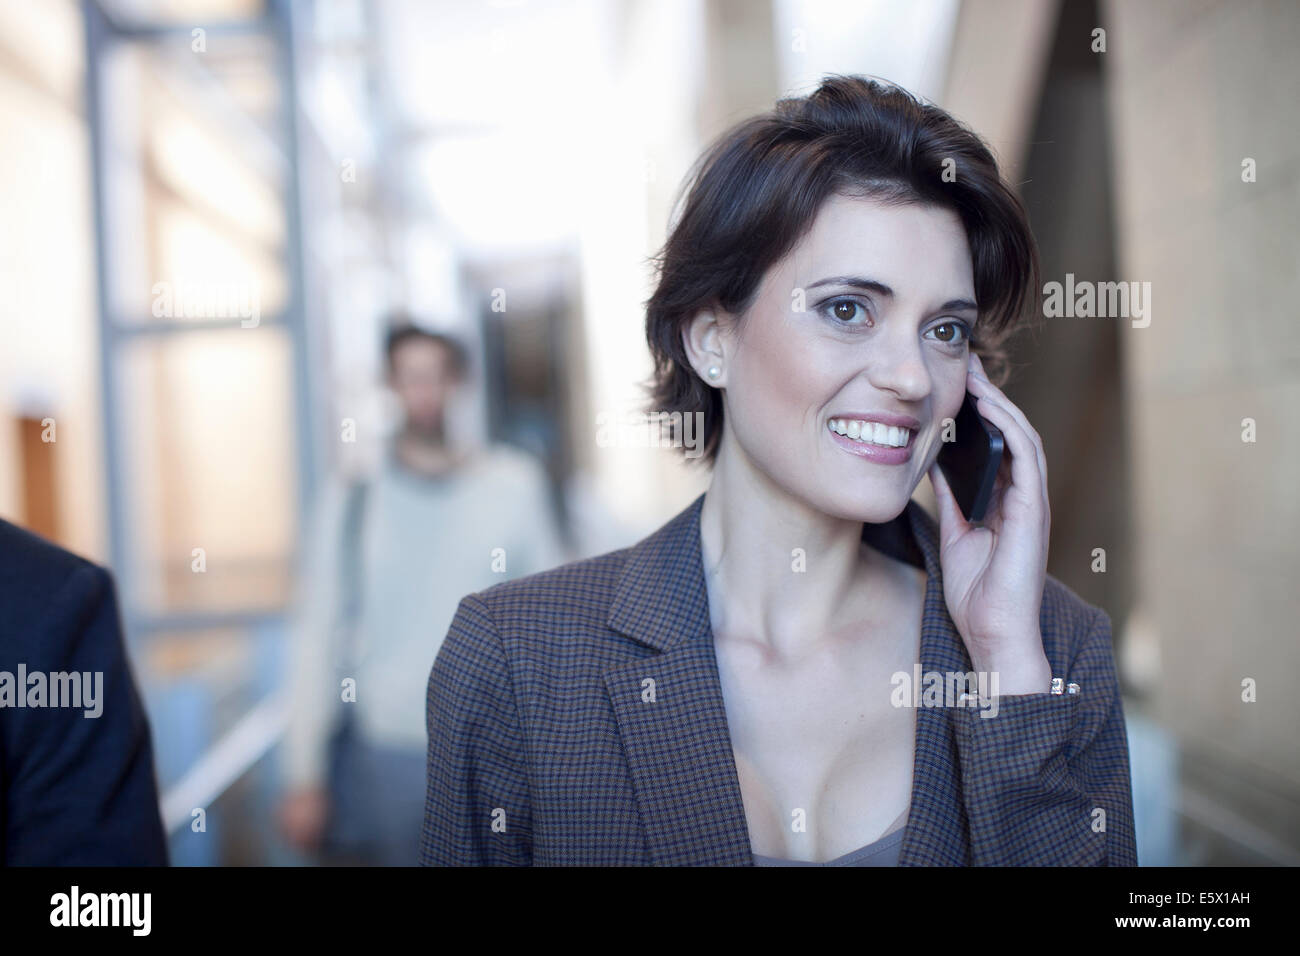 Young businesswoman chatting on smartphone in conference centre - Stock Image